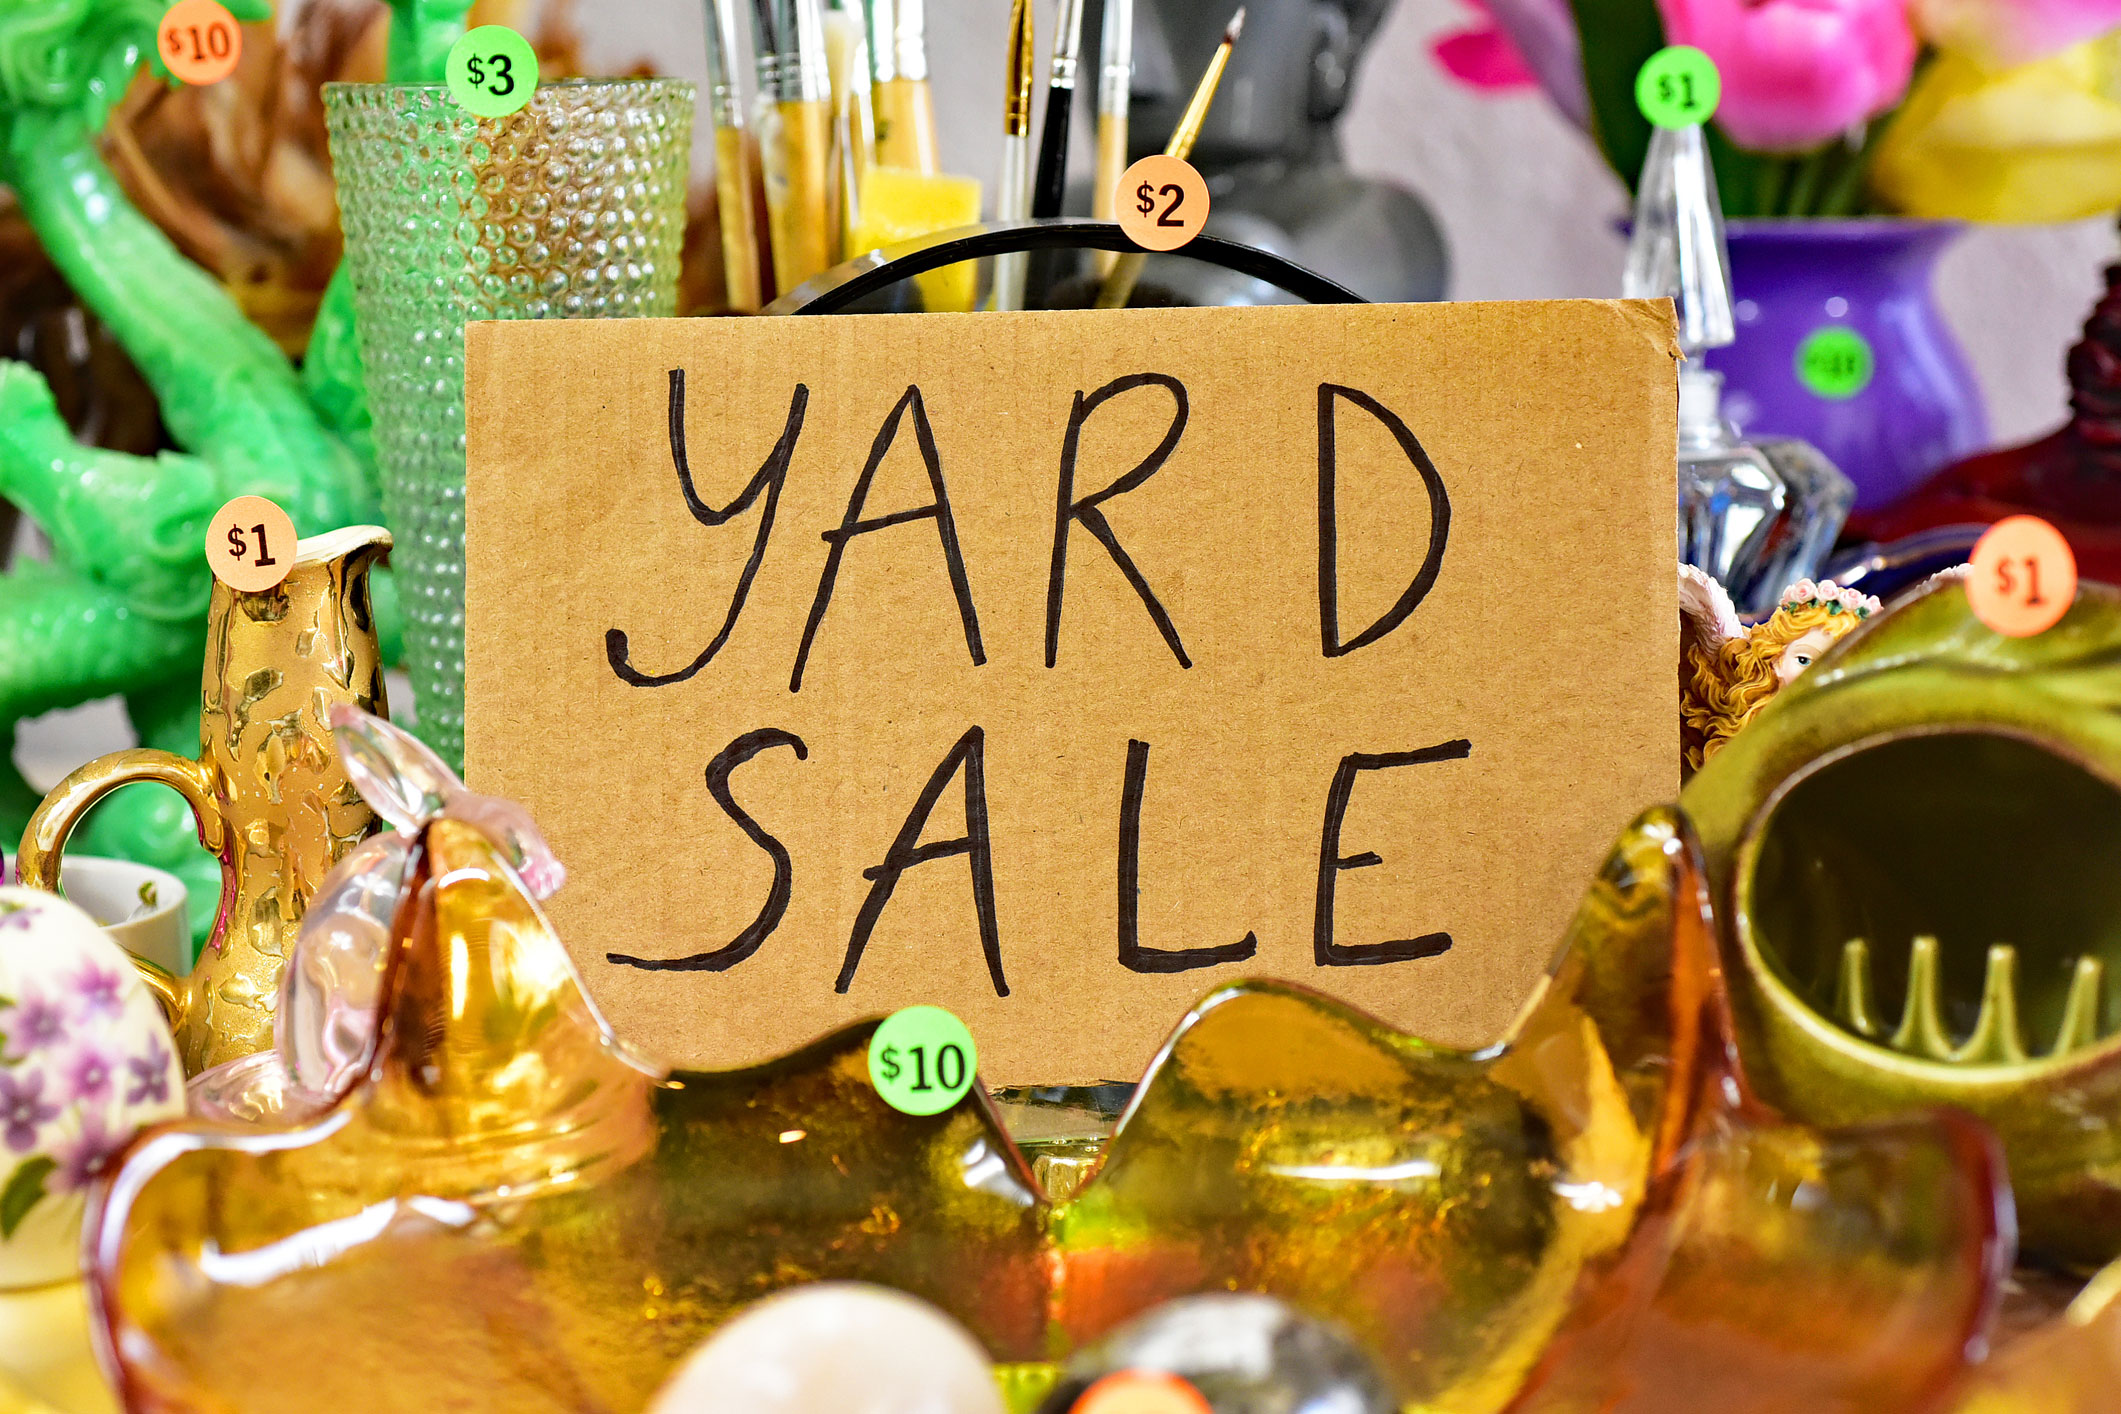 Garage sale yard sale sign with items on a table - stock photo